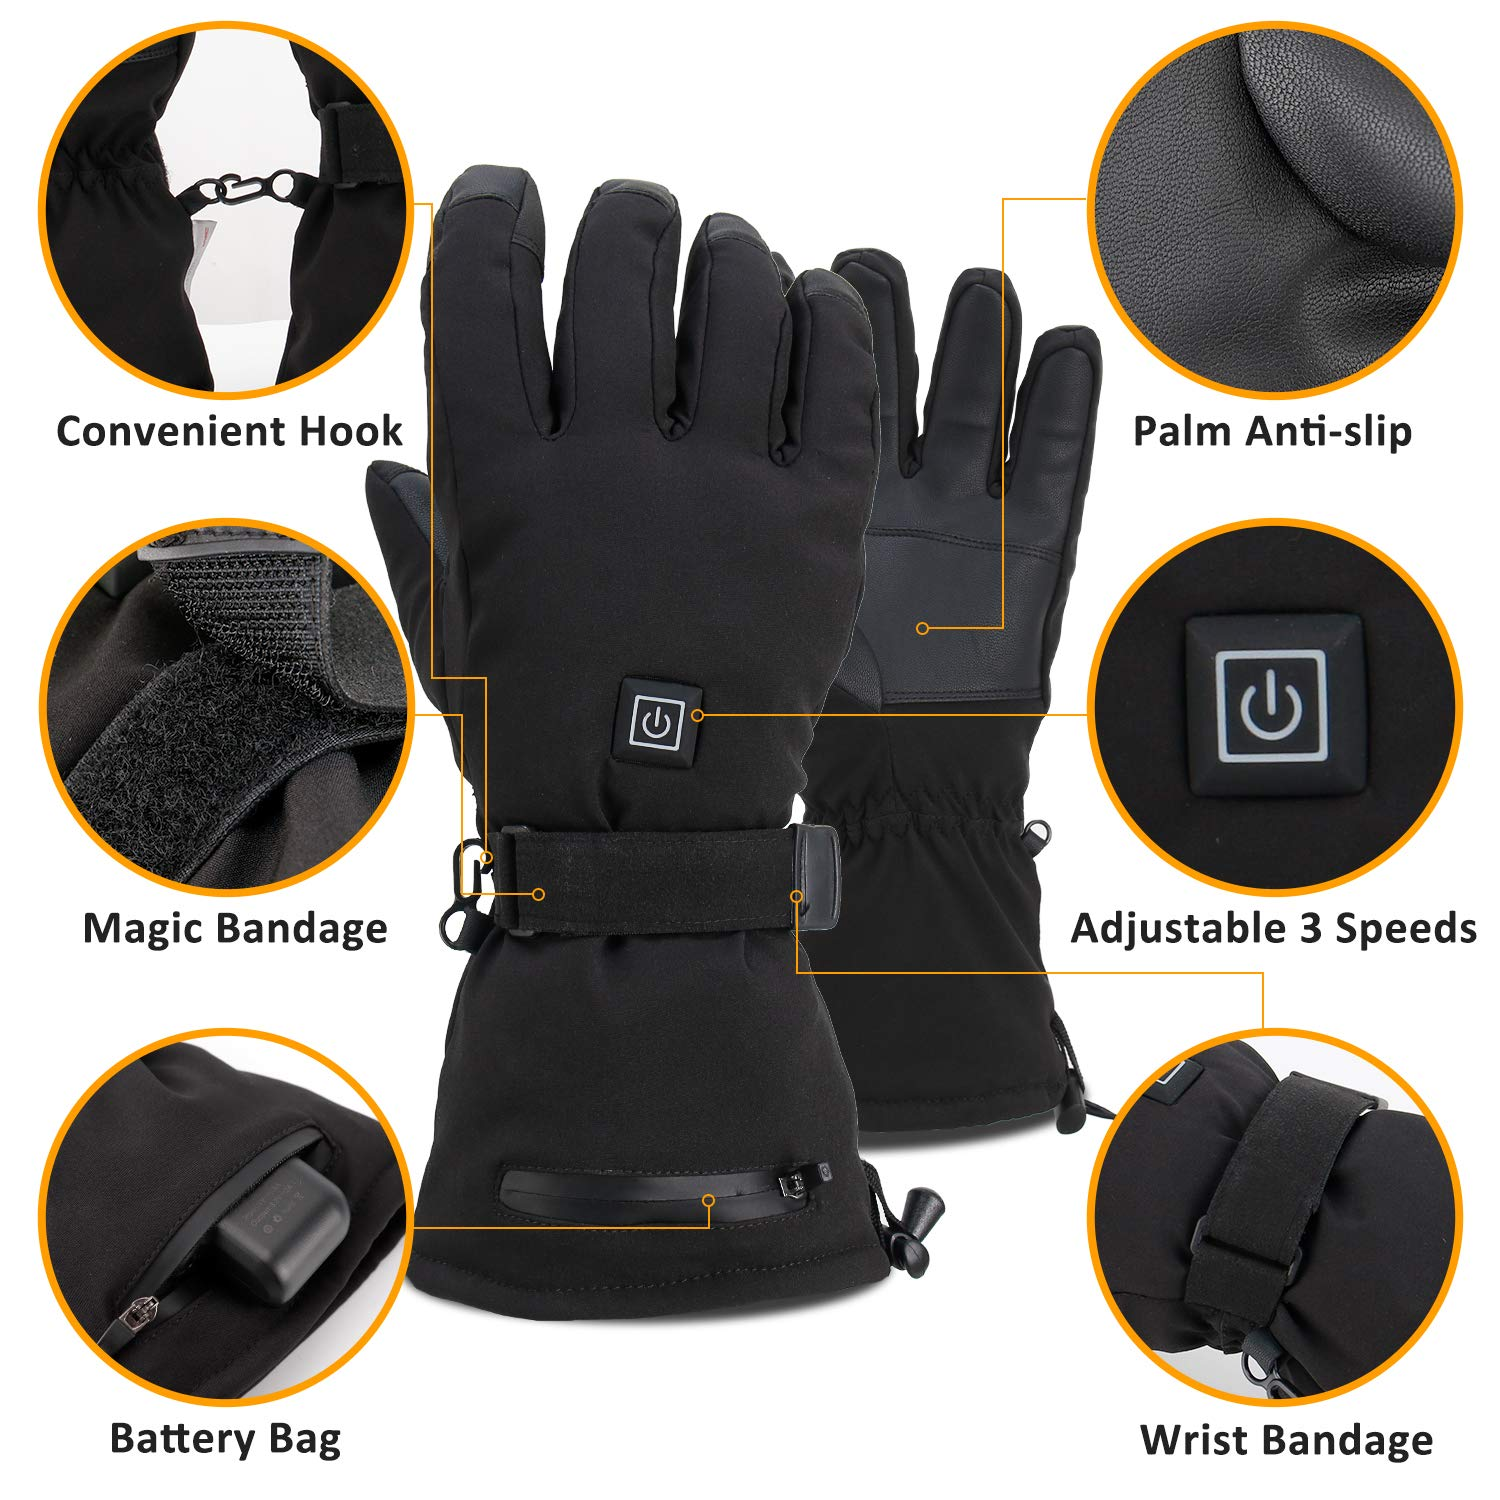 3.7V //3600MAH-Thermal Insulate Gloves for Climbing 3 Levels Temperature Control 2020 Latest Electric Heated Gloves with Rechargeable Battery Skiing Hiking Thermal Gloves Hand Warmer Gloves 3M